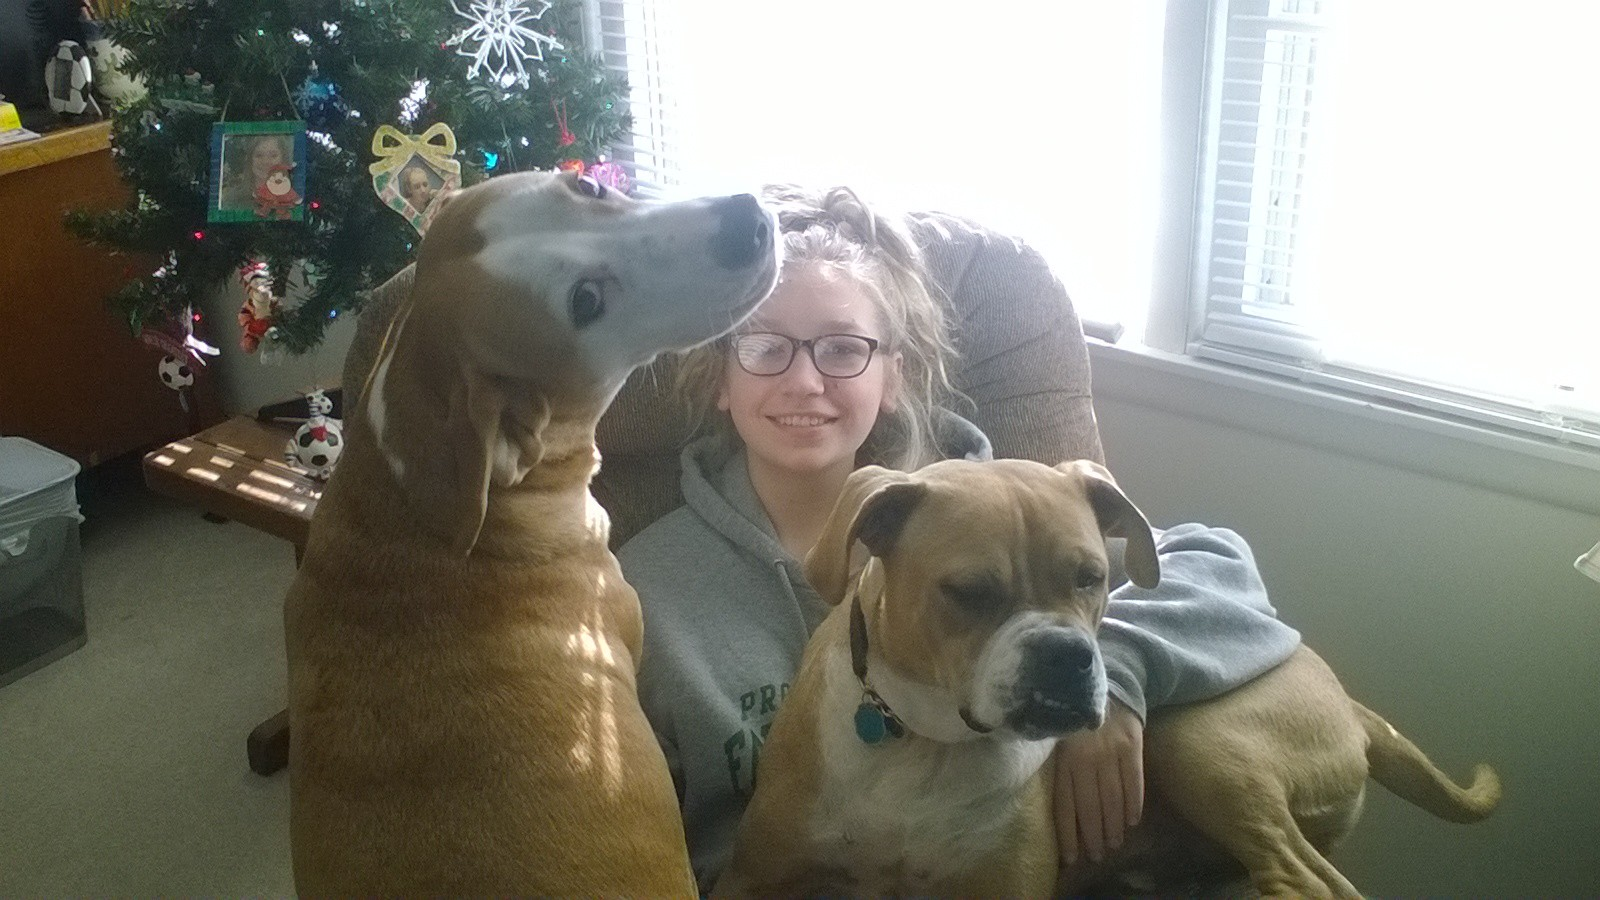 - Bruiser and Butterscotch with Kid #1